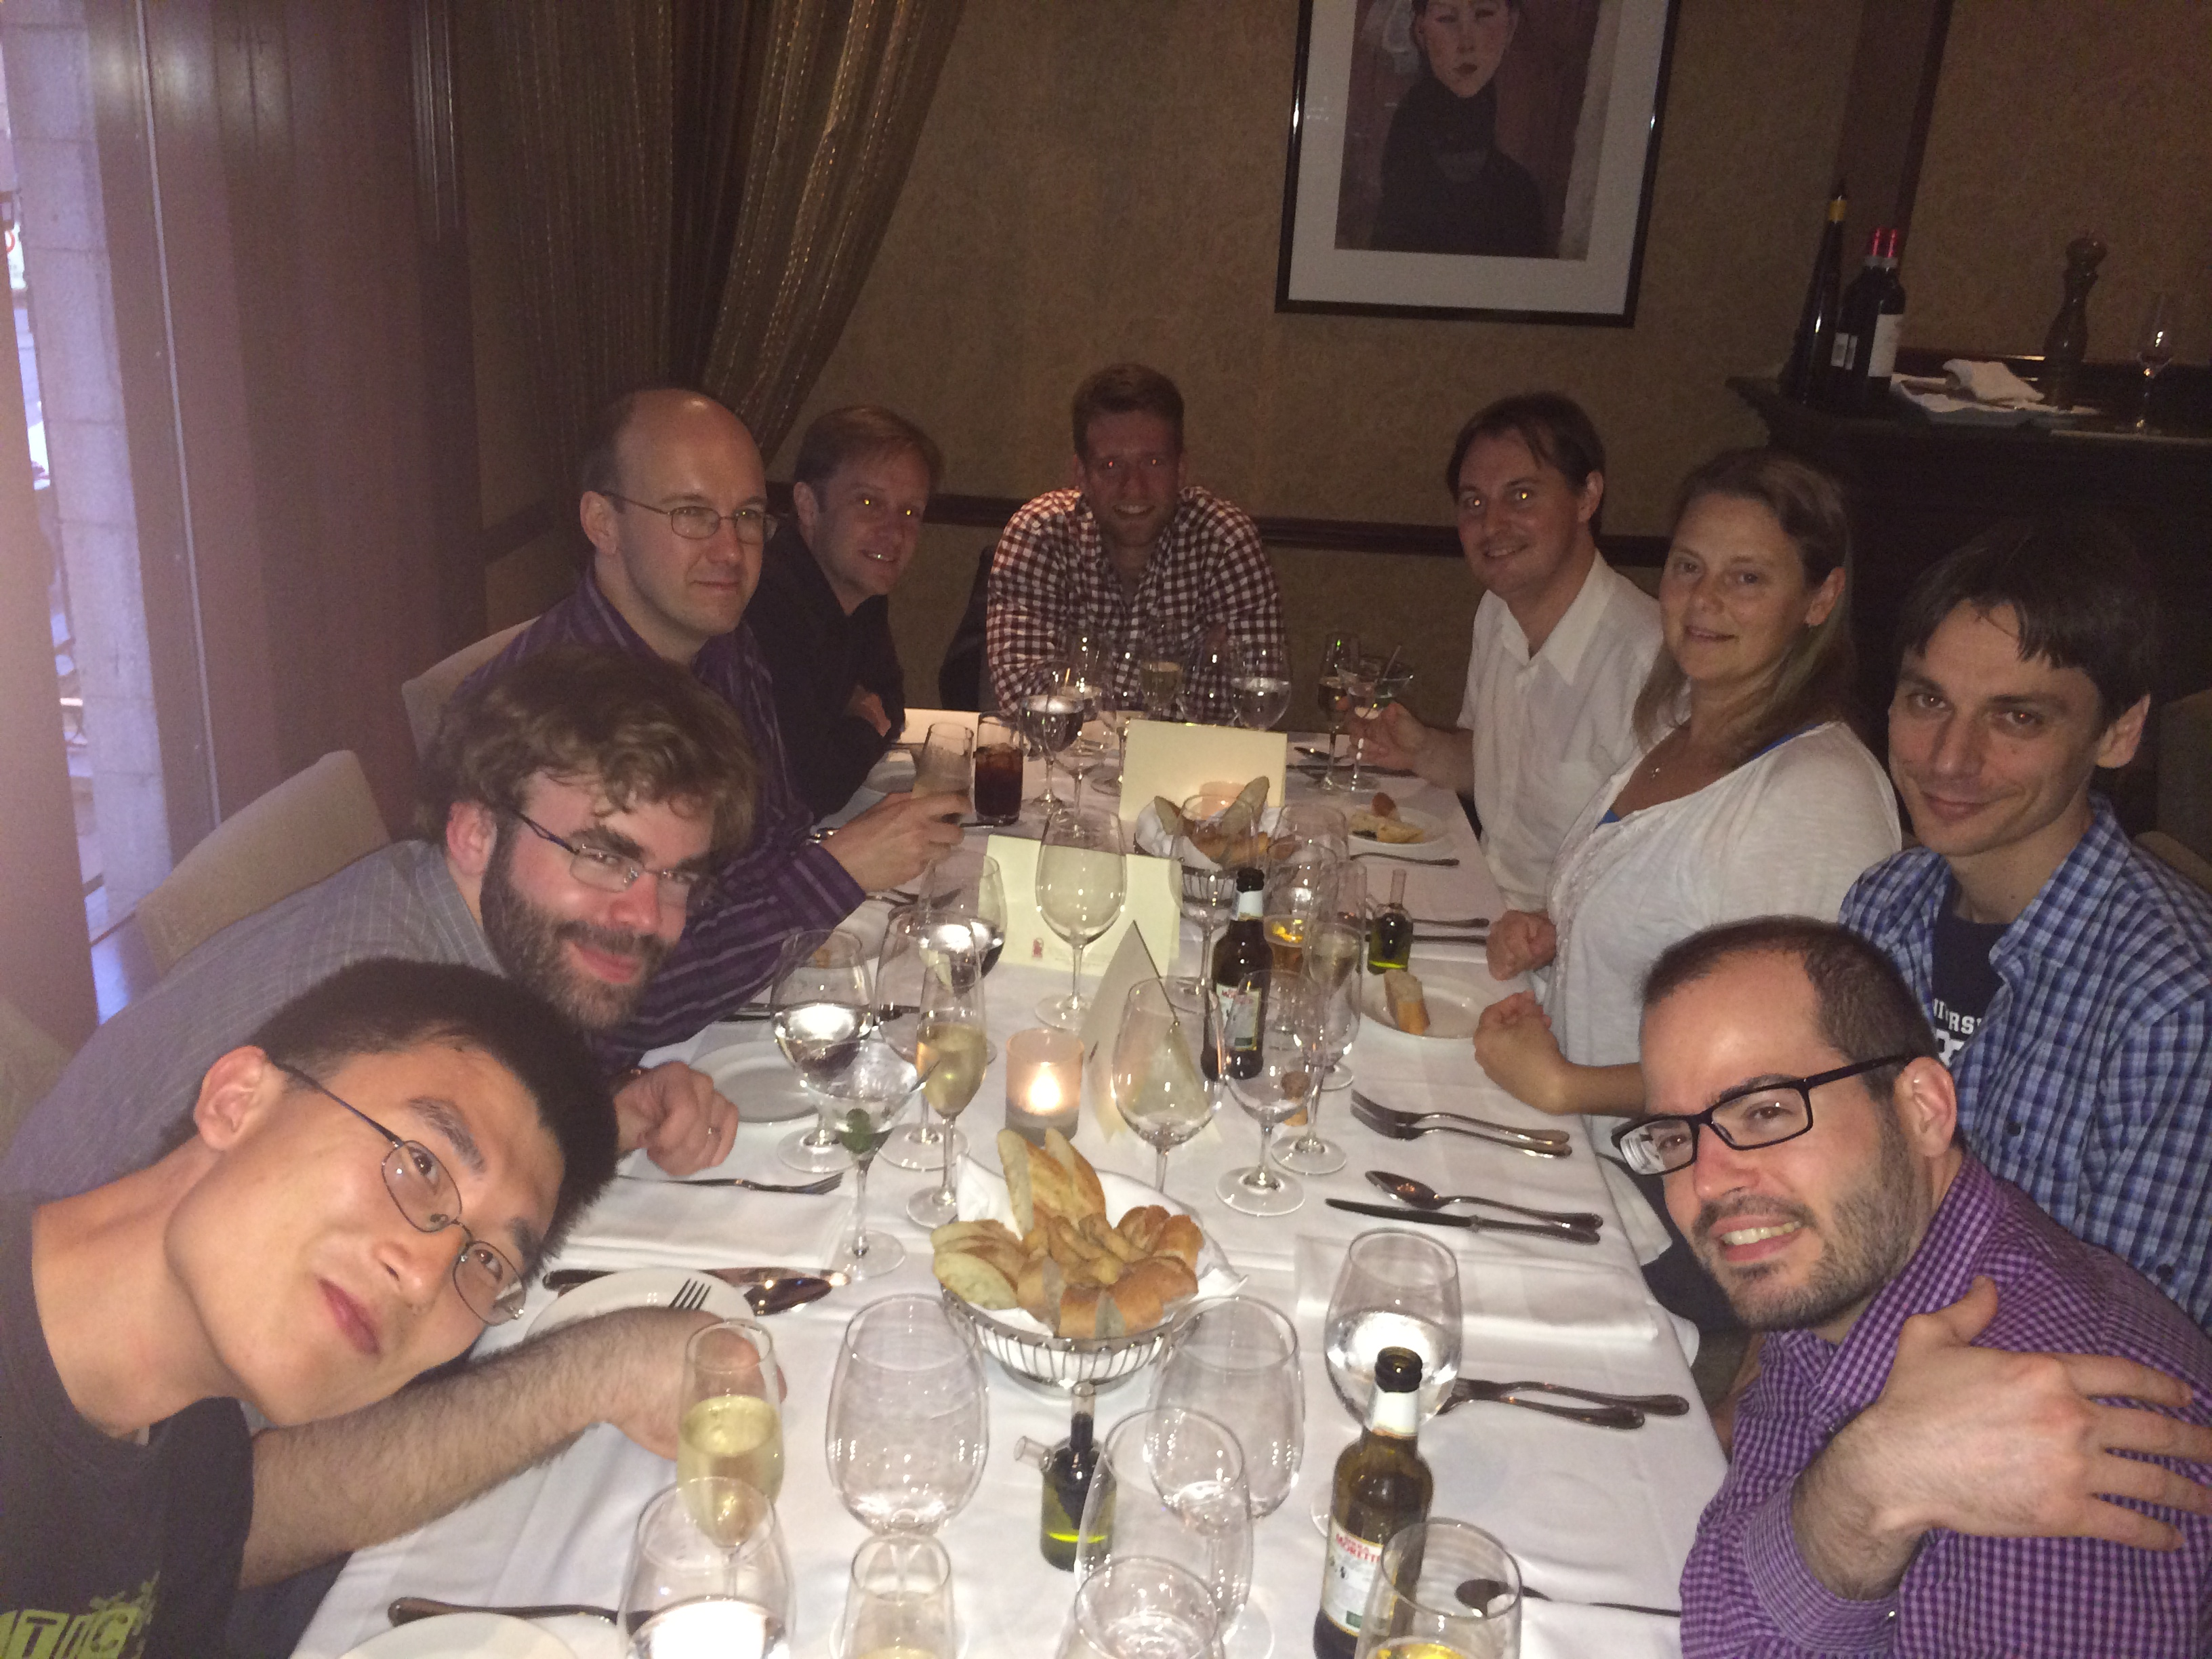 GPI dinner table: Jason Wang, Dmitri Savransky, Bruce Macintosh, James Larkin, Max Millar-Blanchaer, Marshall Perrin, Schuyler Wolff, Jerome Maire, Mark Ammons